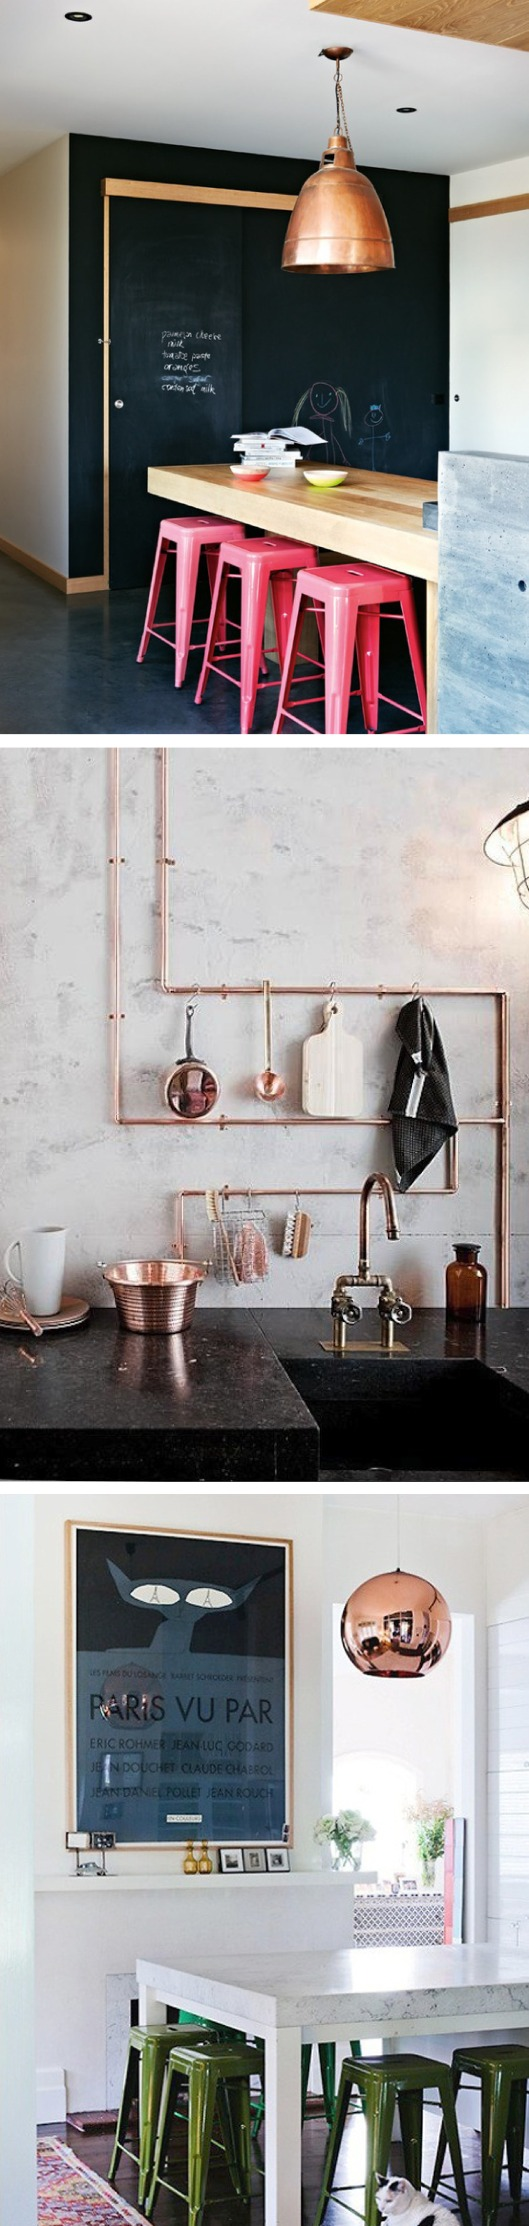 copper crush | sparklingandsweet.com